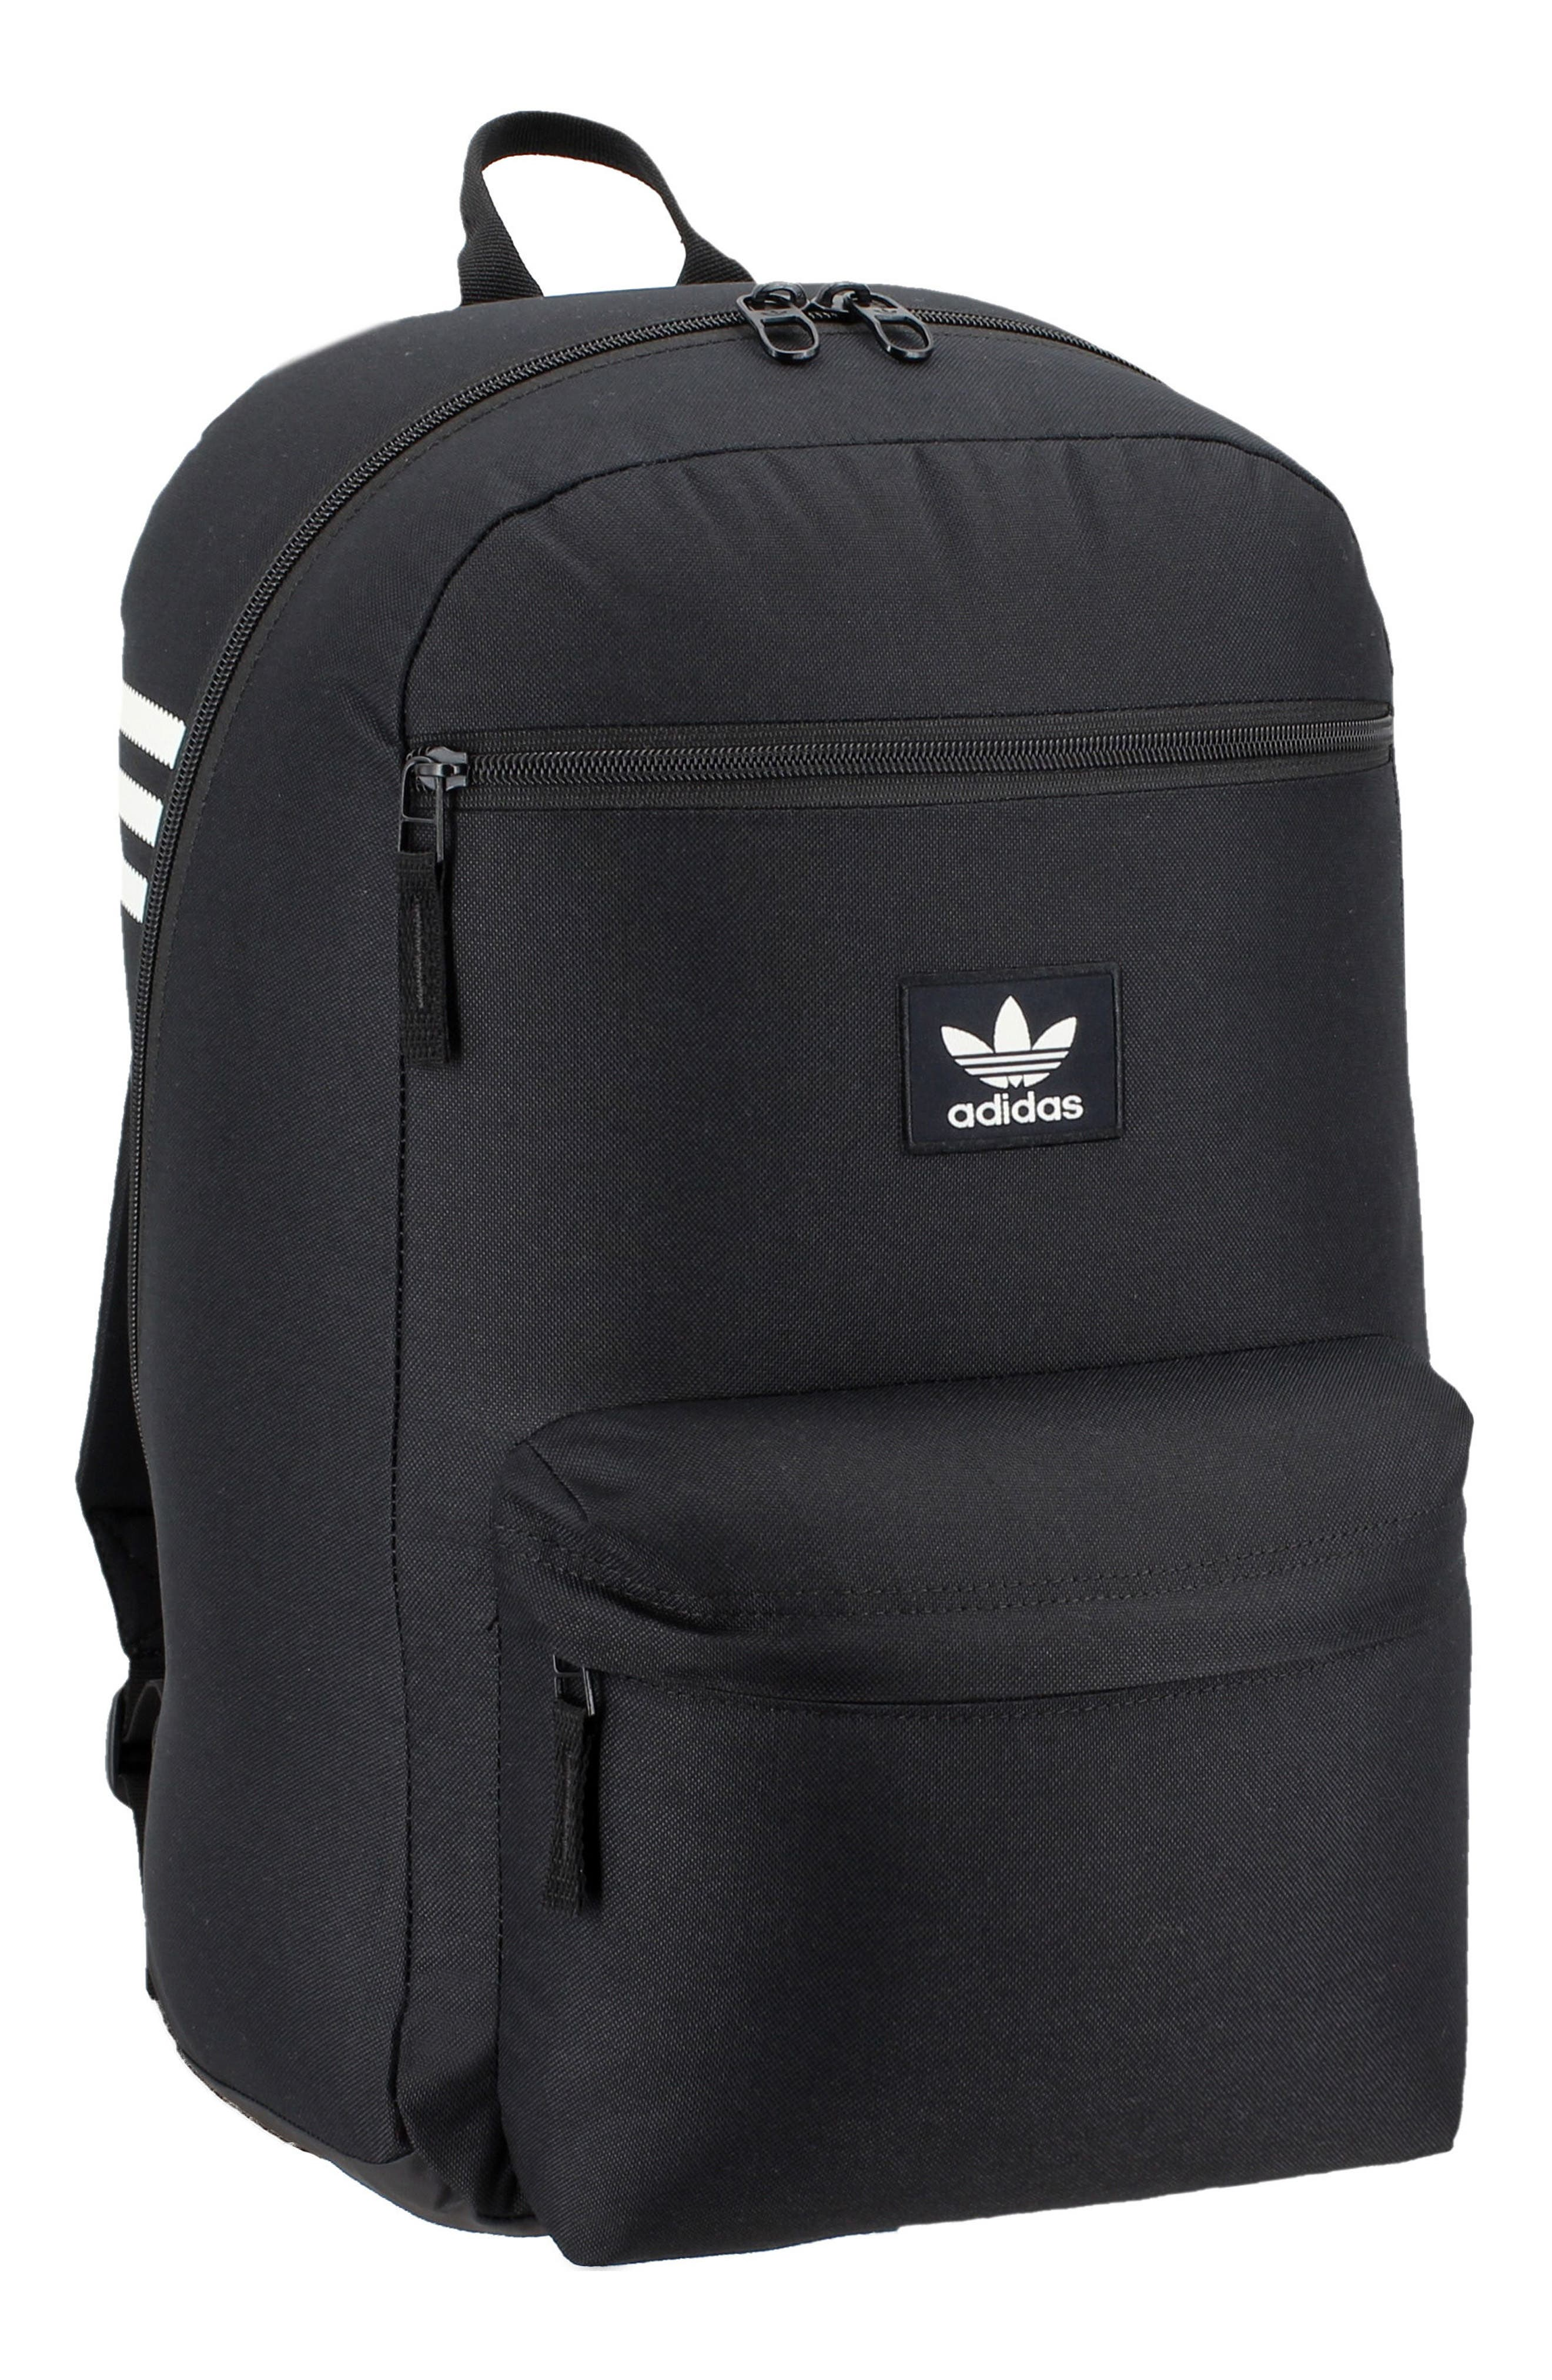 Adidas Originals Nationals Backpack -